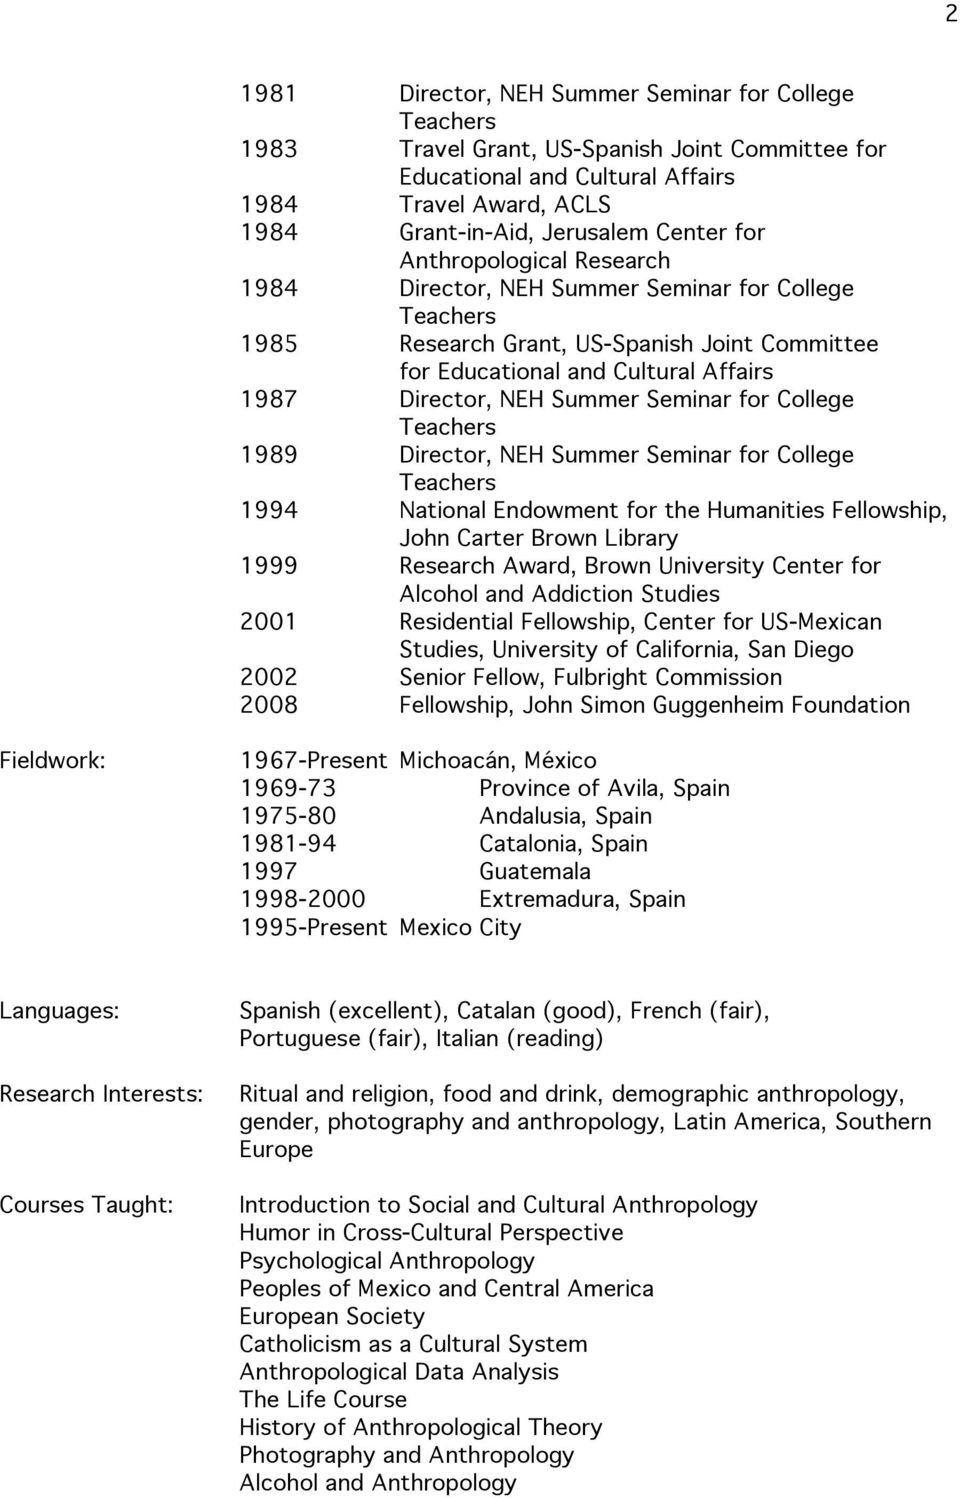 Seminar for College Teachers 1989 Director, NEH Summer Seminar for College Teachers 1994 National Endowment for the Humanities Fellowship, John Carter Brown Library 1999 Research Award, Brown